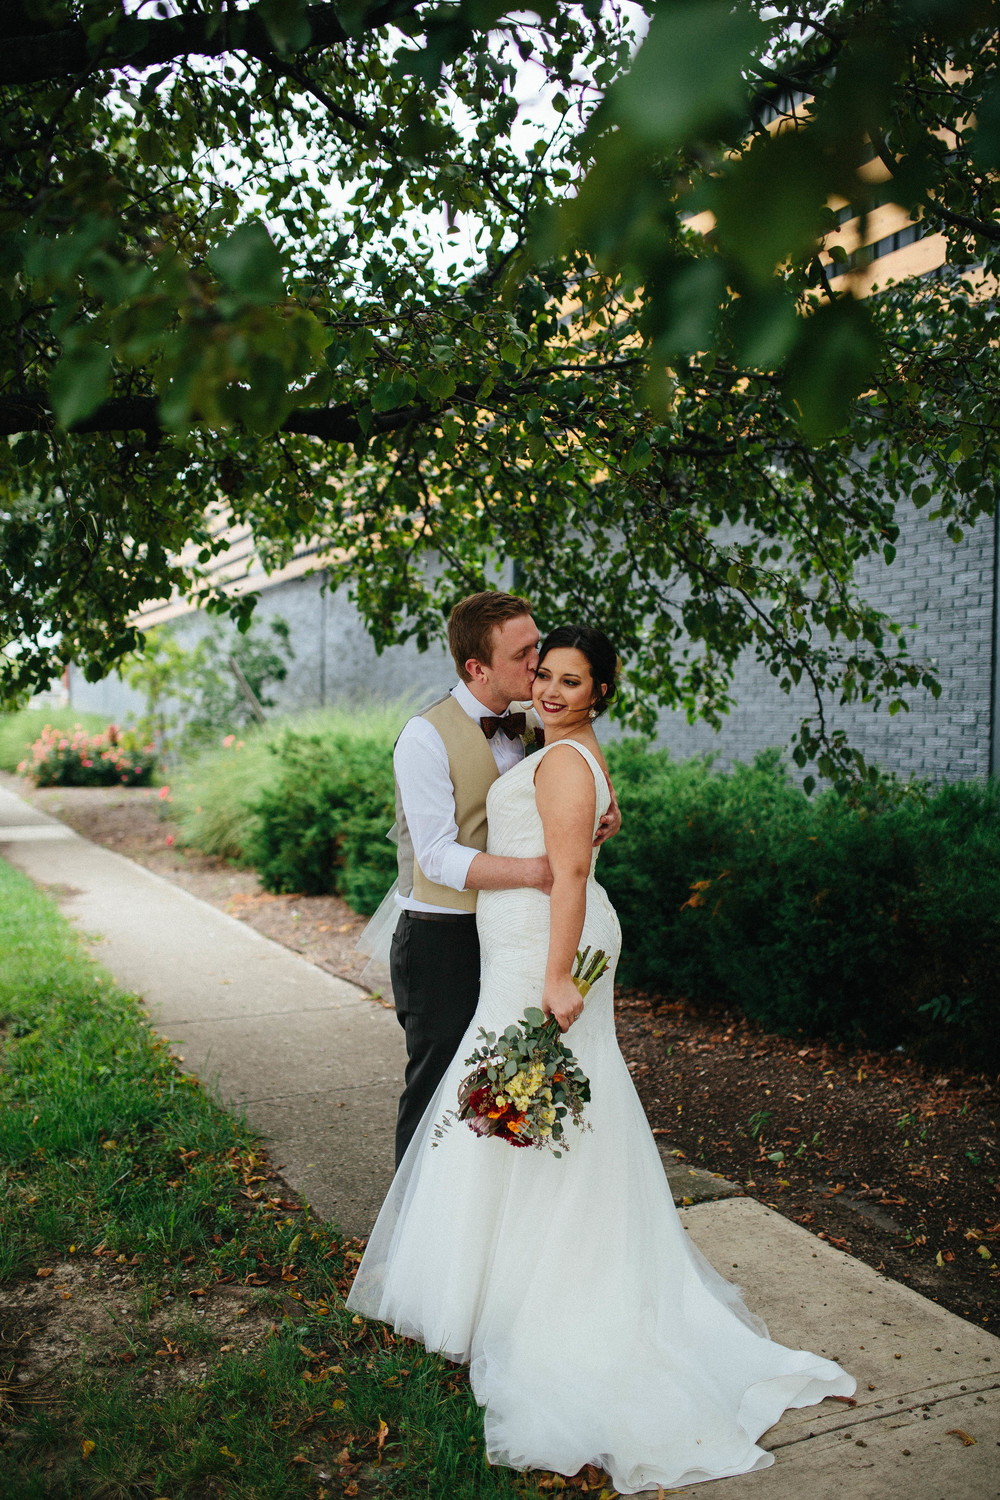 andrew and meagan wedding-60.jpg